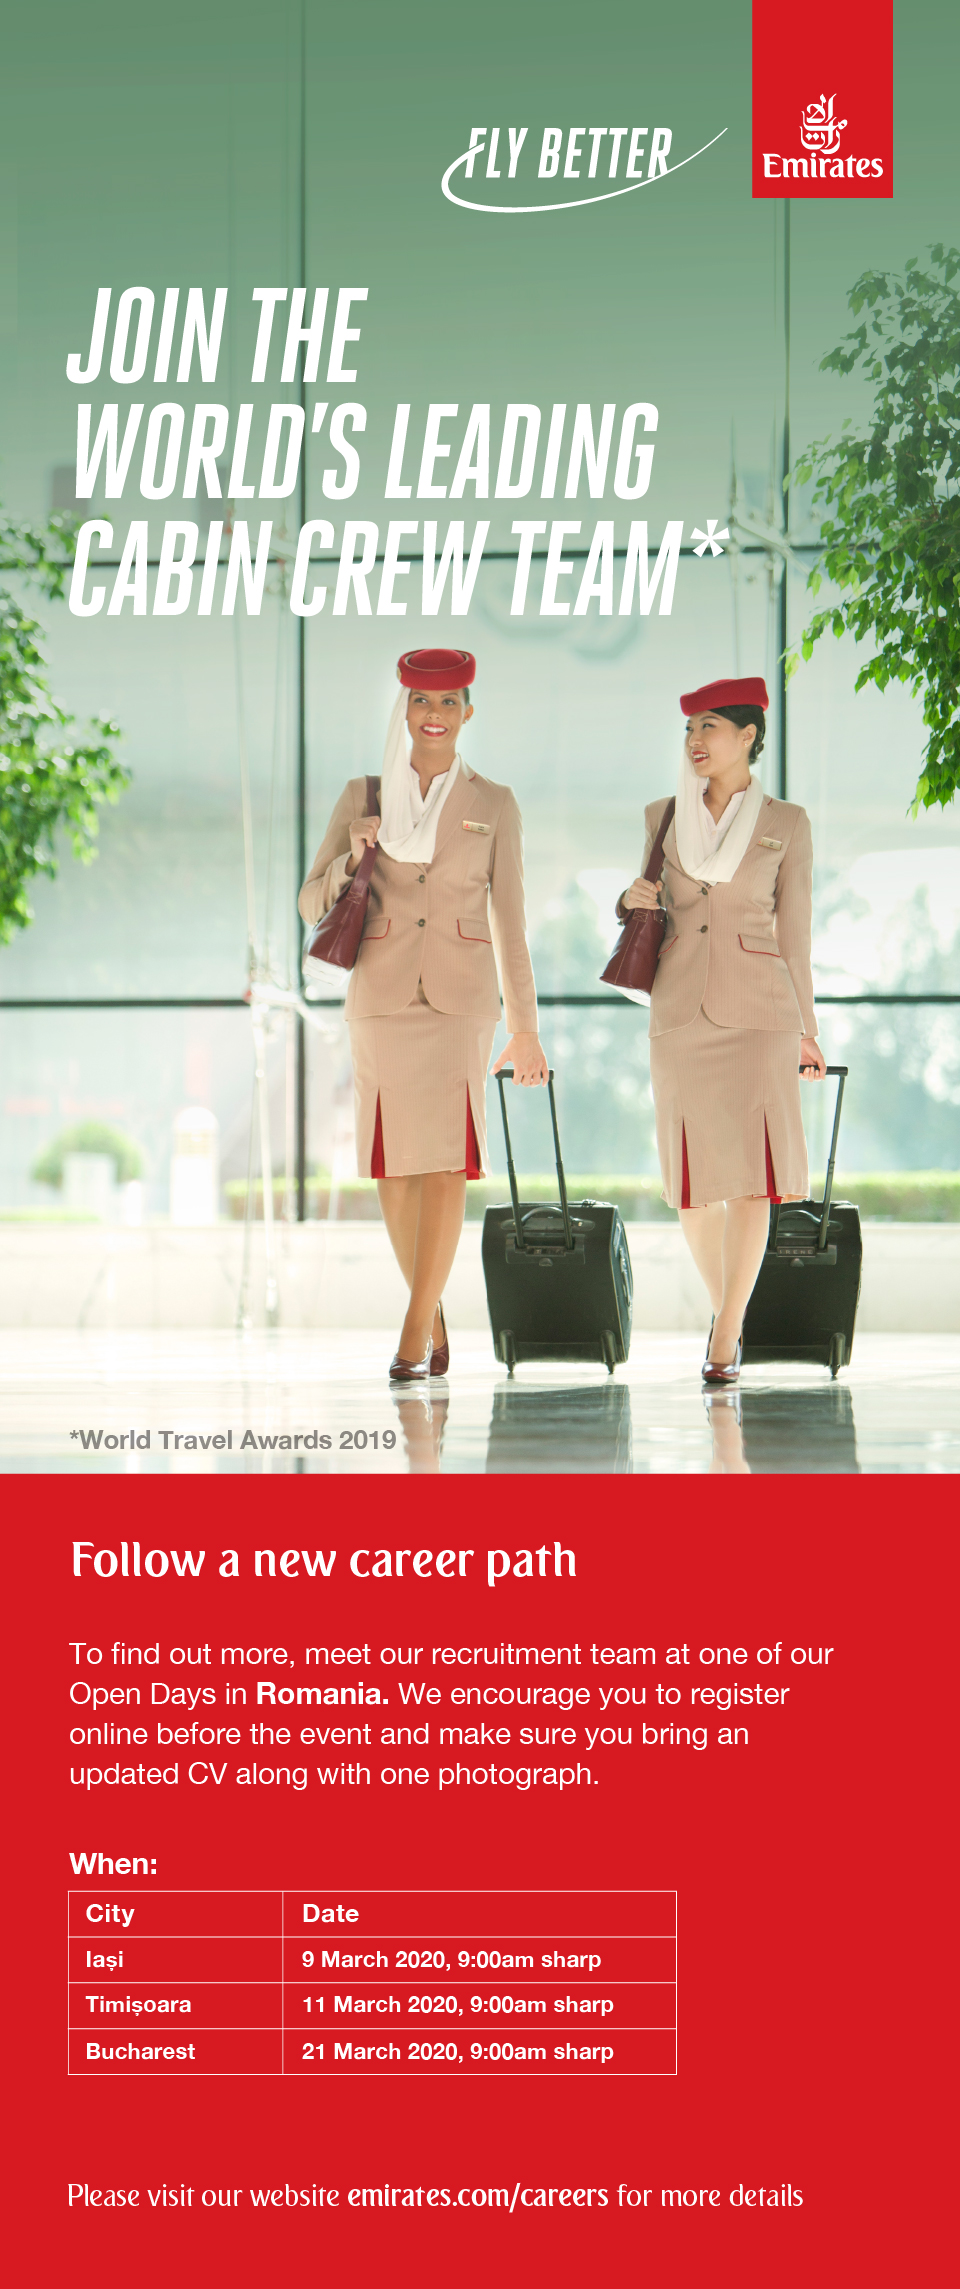 Cabin Crew, Iasi, Timisoara, Bucuresti  Ready for your next step? This could be your chance to make a life-changing career move. As part of the Emirates Cabin Crew, you'll get to combine your passion for customer service excellence with non-stop exploring. We're one of the world's fastest growing airlines and we're looking for exceptional talent to help us deliver unforgettable customer experiences at 40,000 ft. If you're ready to get on board, we'll provide shared furnished accommodation in our dynamic home city of Dubai. That's on top of a competitive tax-free salary and travel benefits for you and your family. Take the next step in your journey and explore new cultures and landscapes in more than 150 destinations across six continents. To find out more, come and meet our recruitment team at one of our Open Days in Romania. We encourage you to apply online before the event, and make sure you bring with you an updated CV along with one photograph. You can get all the venue details at emirates.com/careers. When: City Date Bucharest 2 October 2019, 9:00am sharp Iasi 4 October 2019, 9:00am sharp  Requirements  At least 21 years of age at the time of joining  Arm reach of 212 cm while standing on tiptoes  Minimum height of 160 cm  High school graduate (Grade 12)  Fluency in English (written and spoken)  No visible tattoos while you're in Emirates cabin crew uniform (cosmetic and bandage coverings aren't allowed)  Can adapt to new people, new places and new situations   Physically fit for this demanding role with a healthy Body Mass Index (BMI) For further information and to apply, please visit emirates.com/careers Emirates. Fly Better.